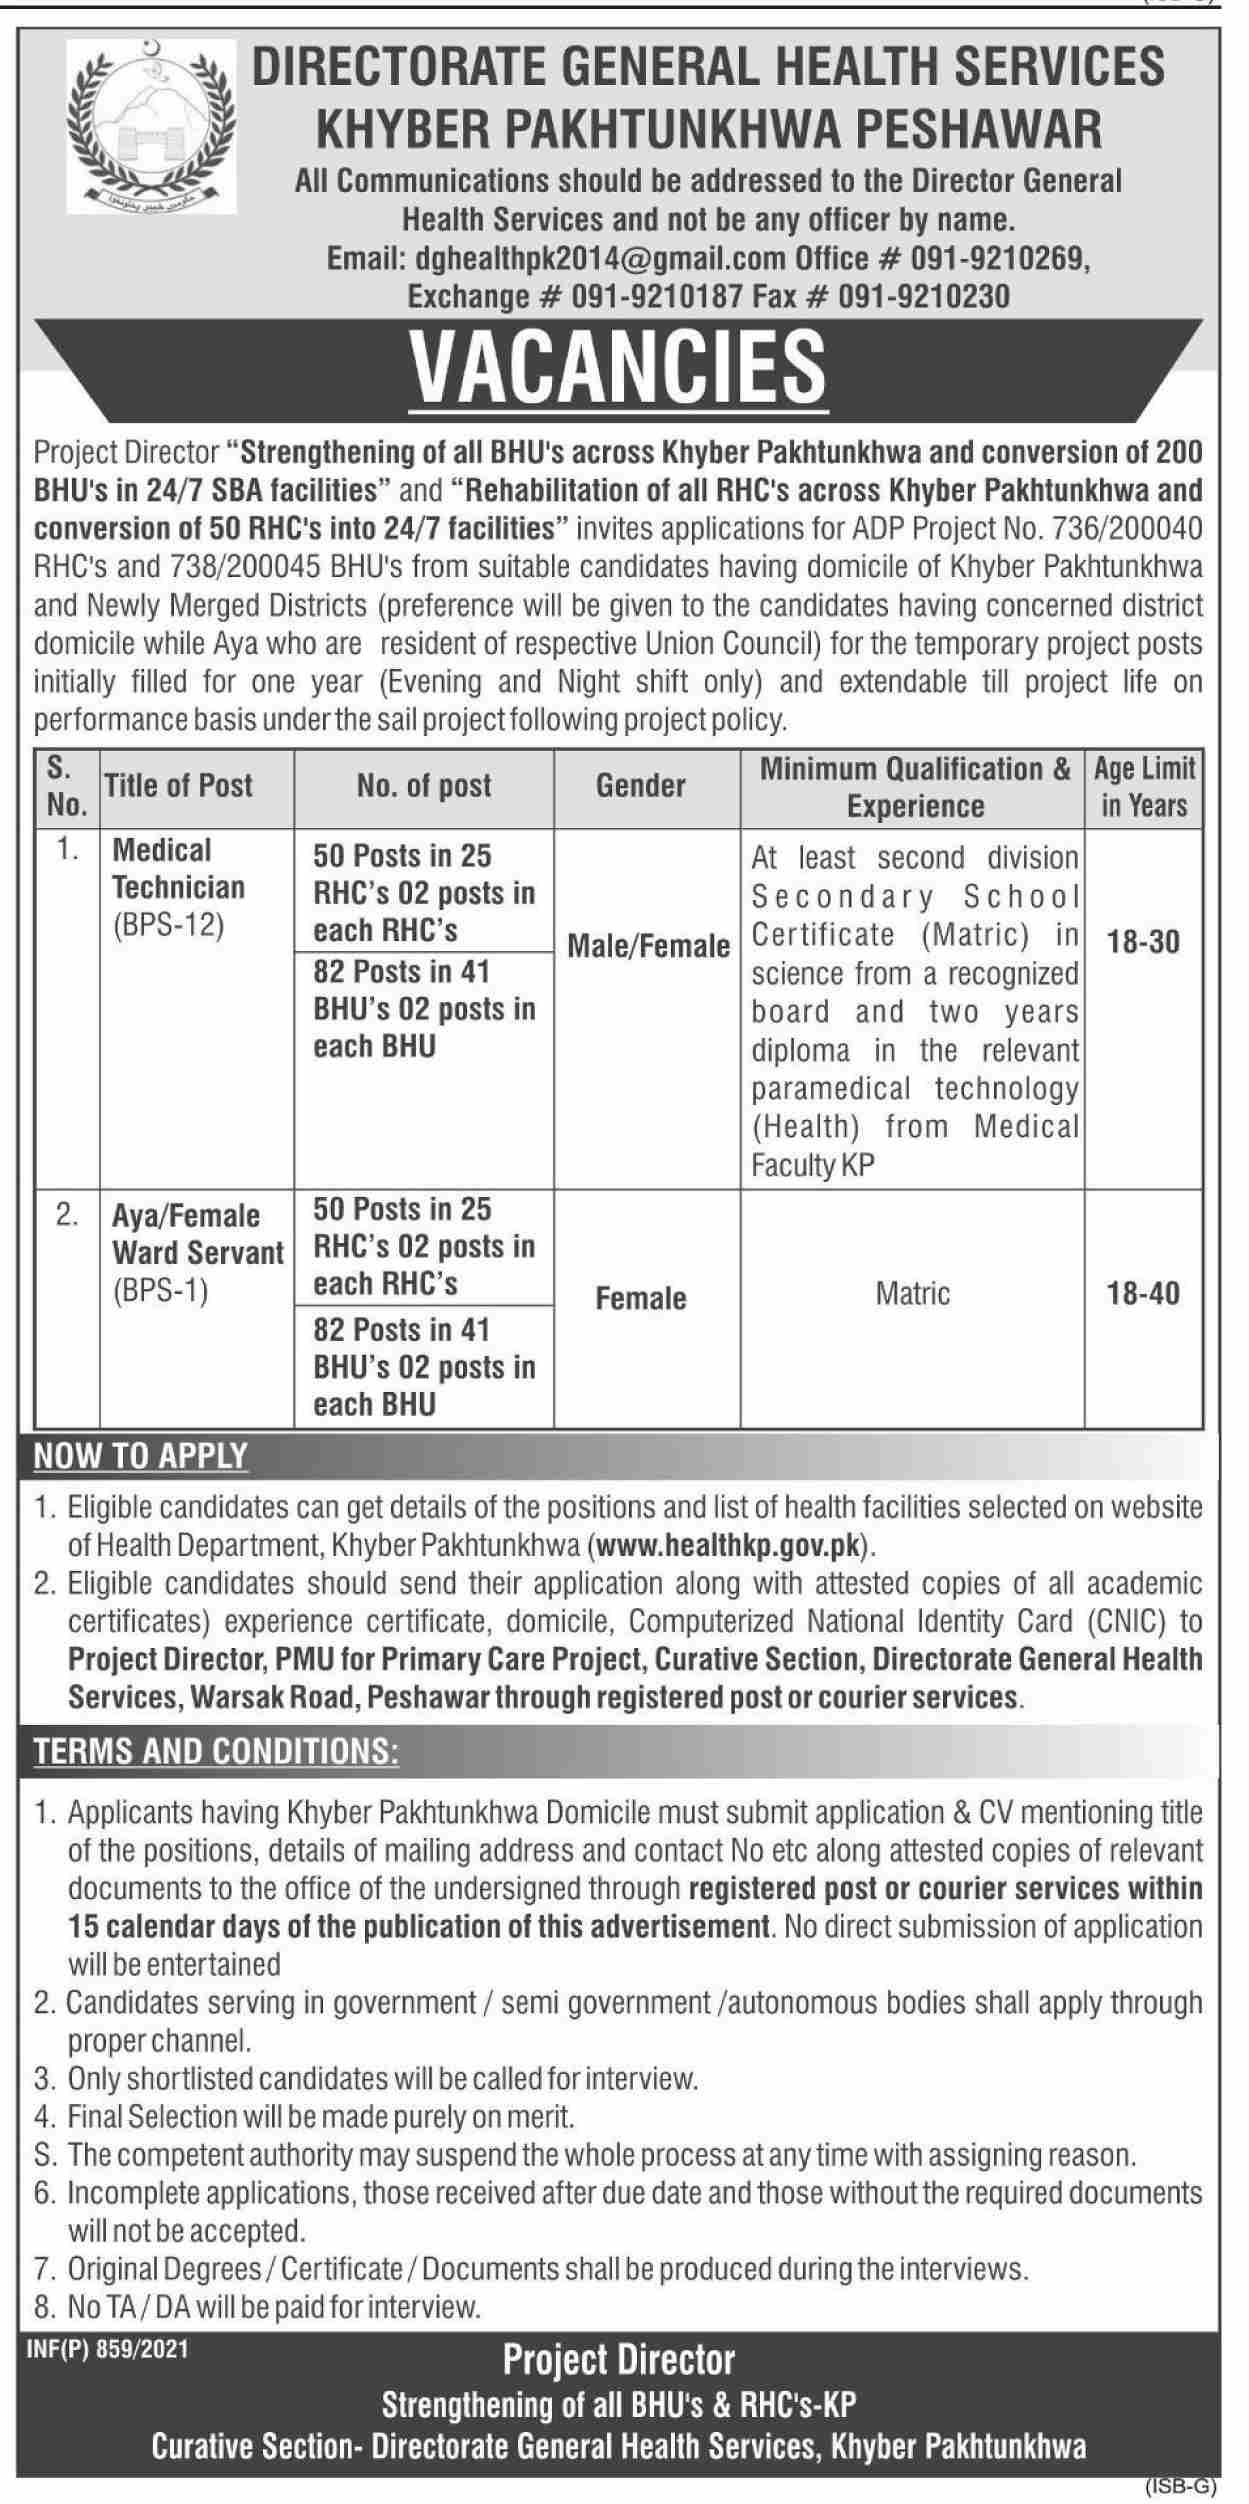 Directorate General Health Services Khyber Pakhtunkhwa JObs February 2021